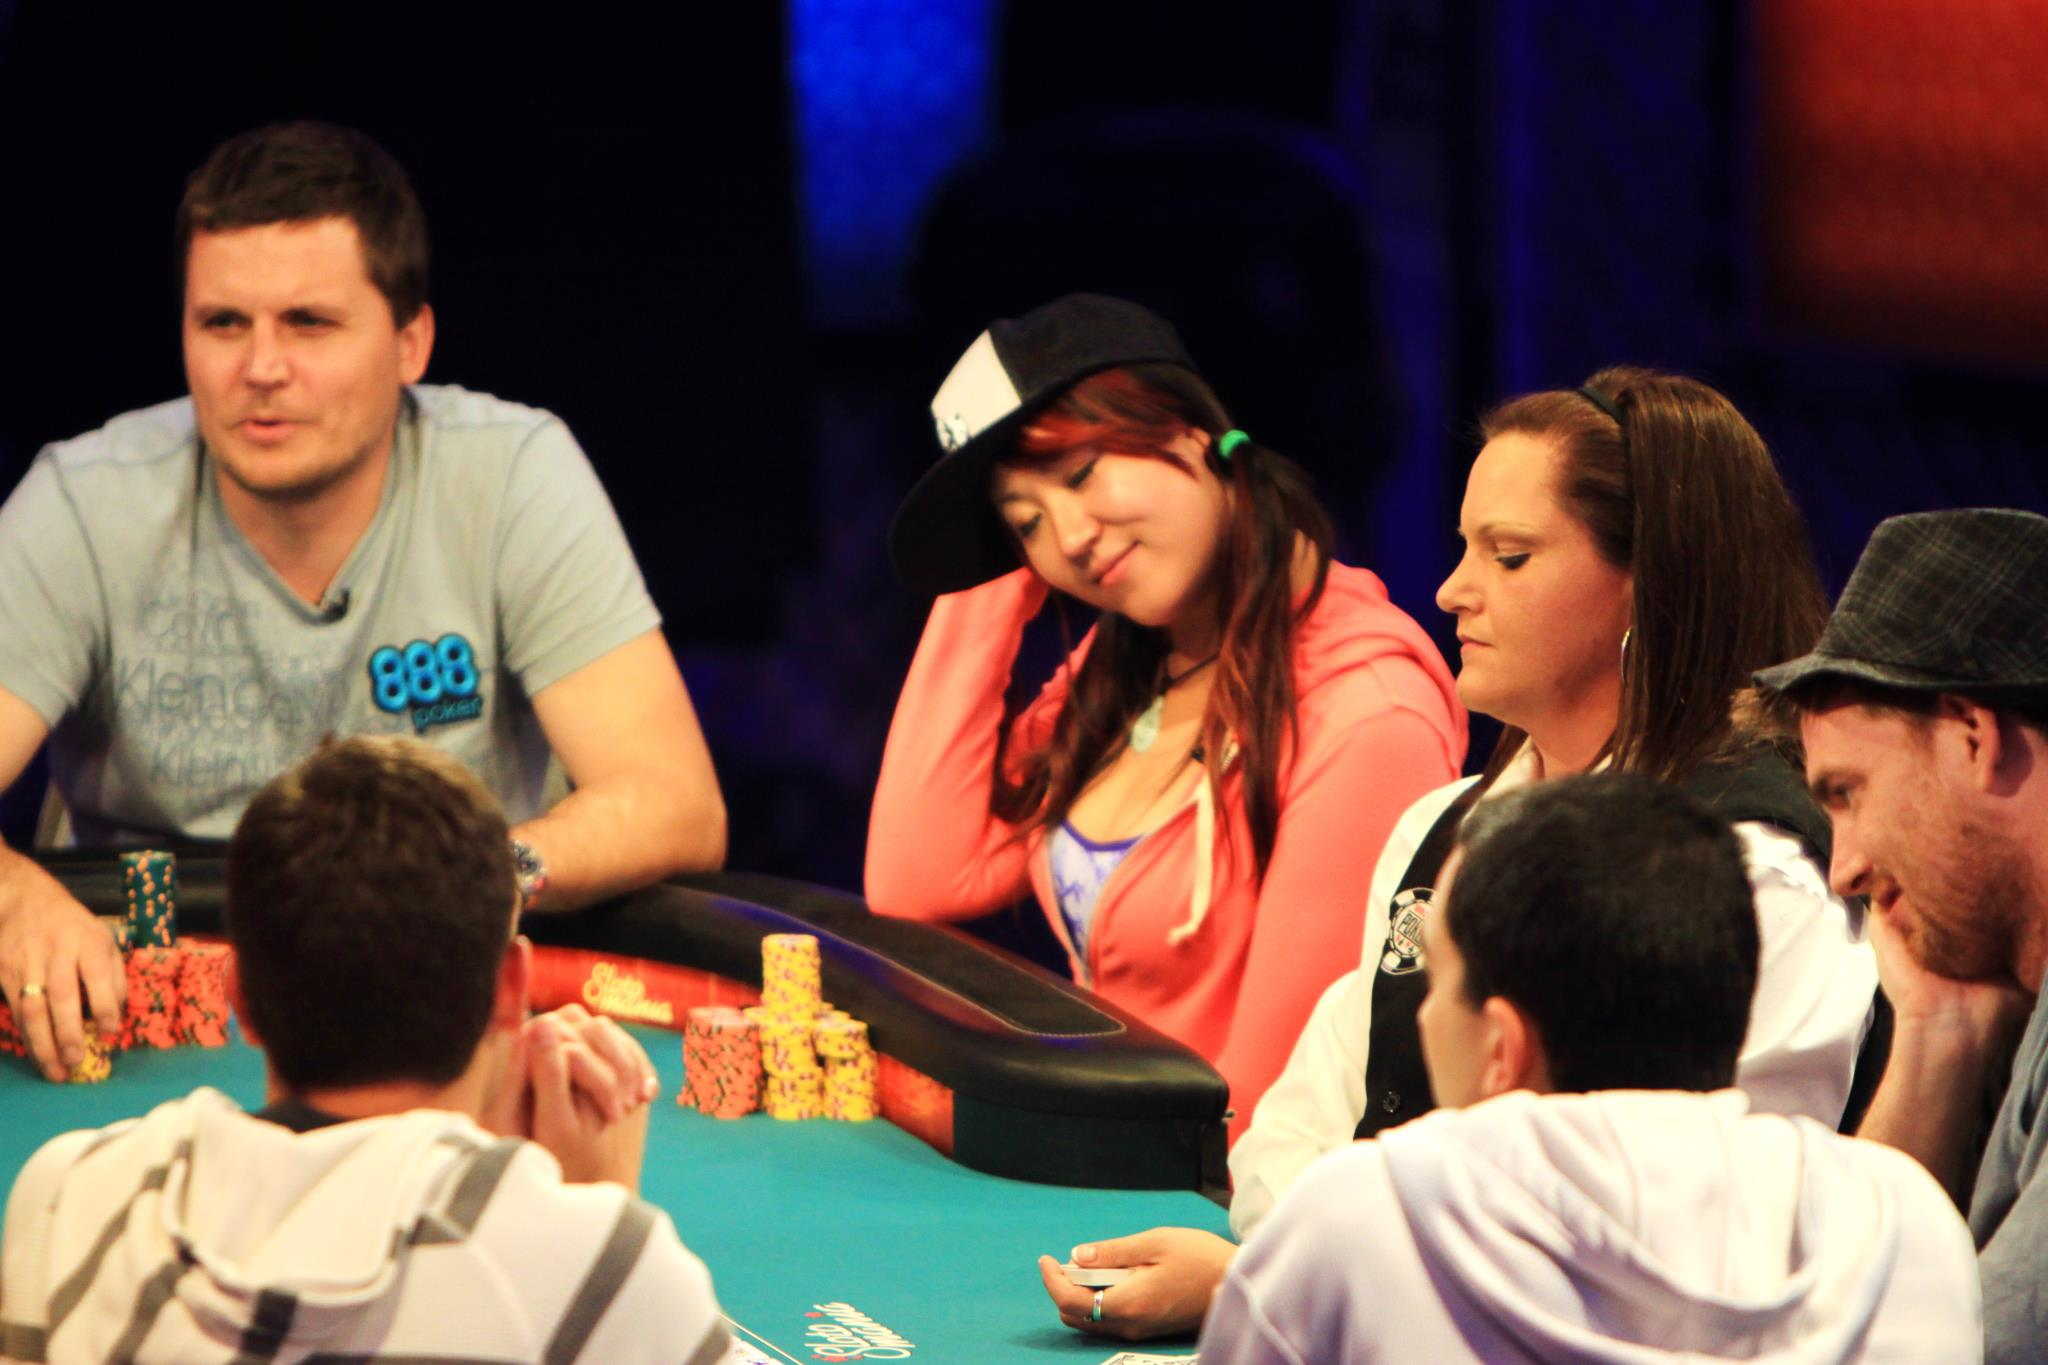 Poker pro Susie Zhao at a poker table with other players